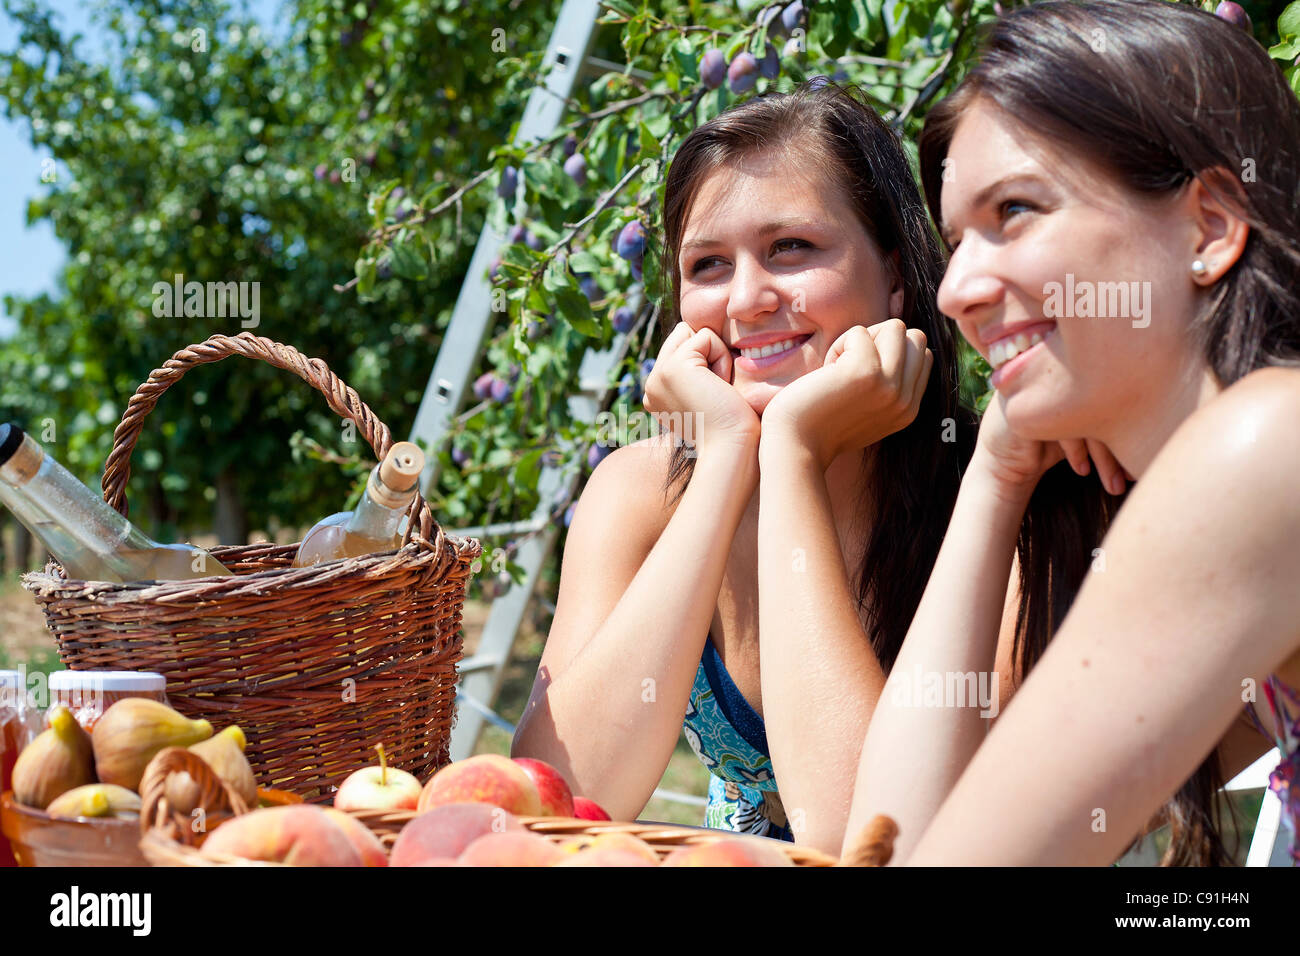 Smiling women picnicking in orchard - Stock Image